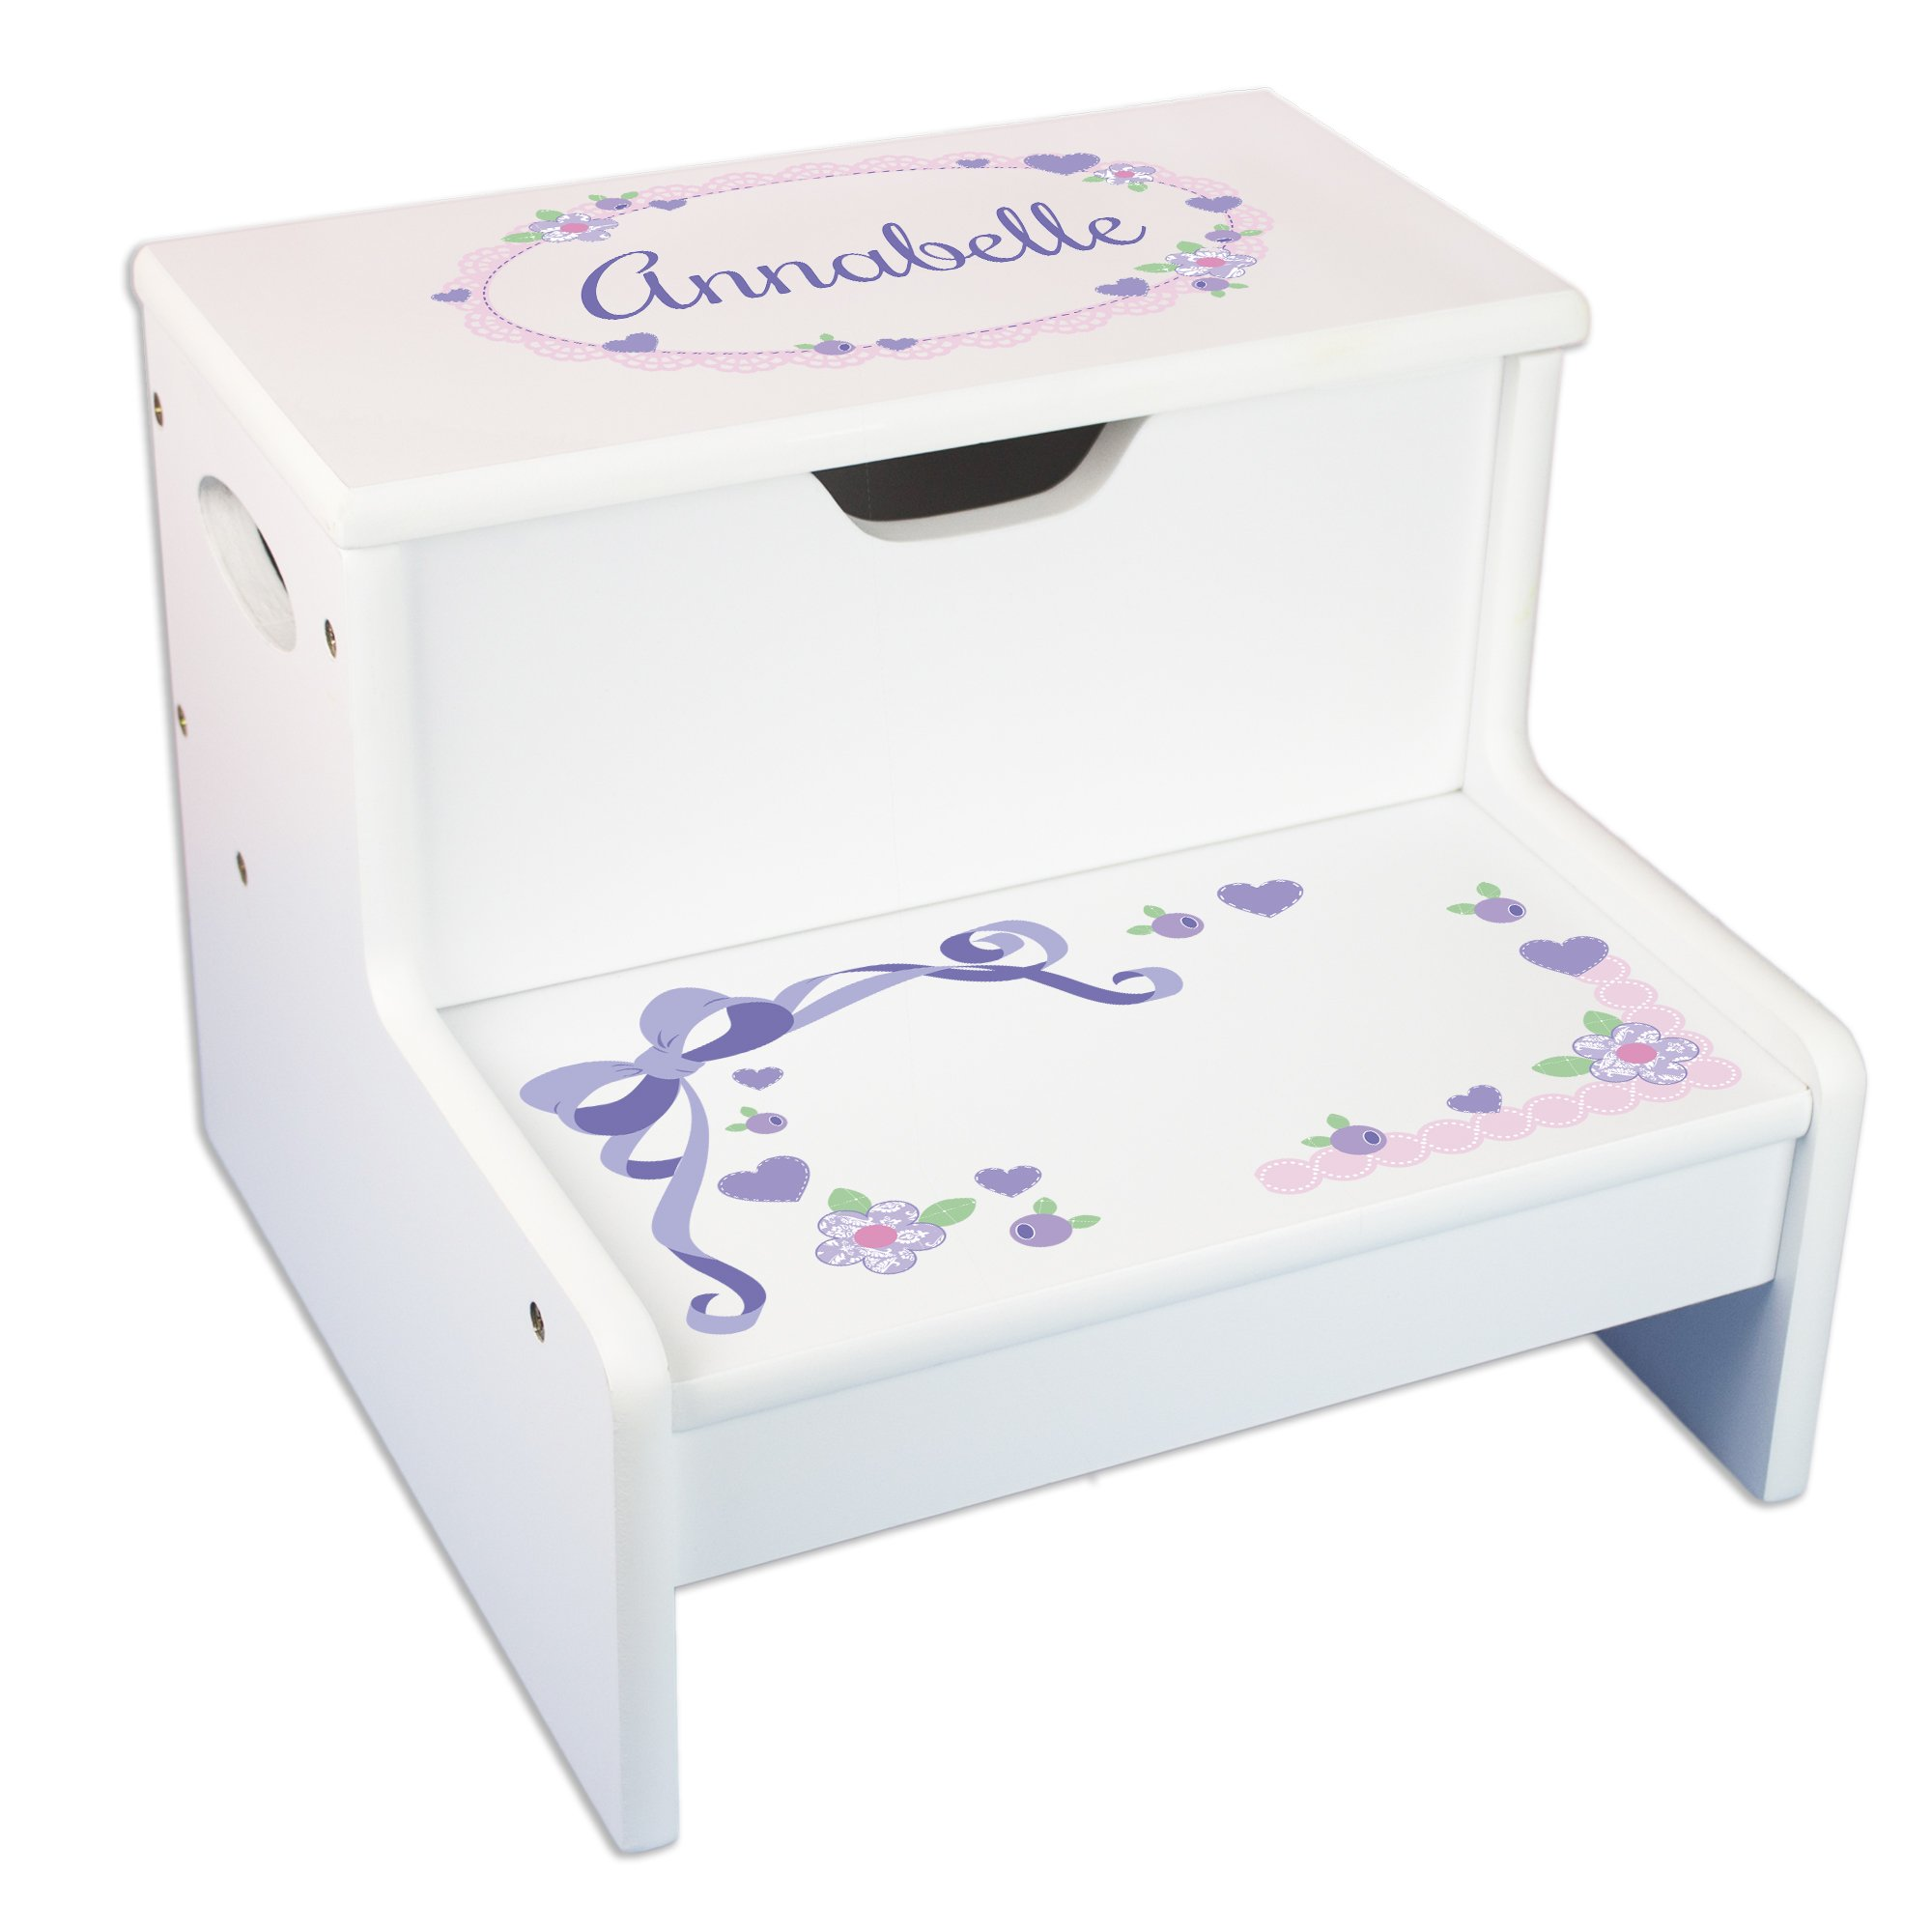 Personalized Lacey Bow Storage Step Stool